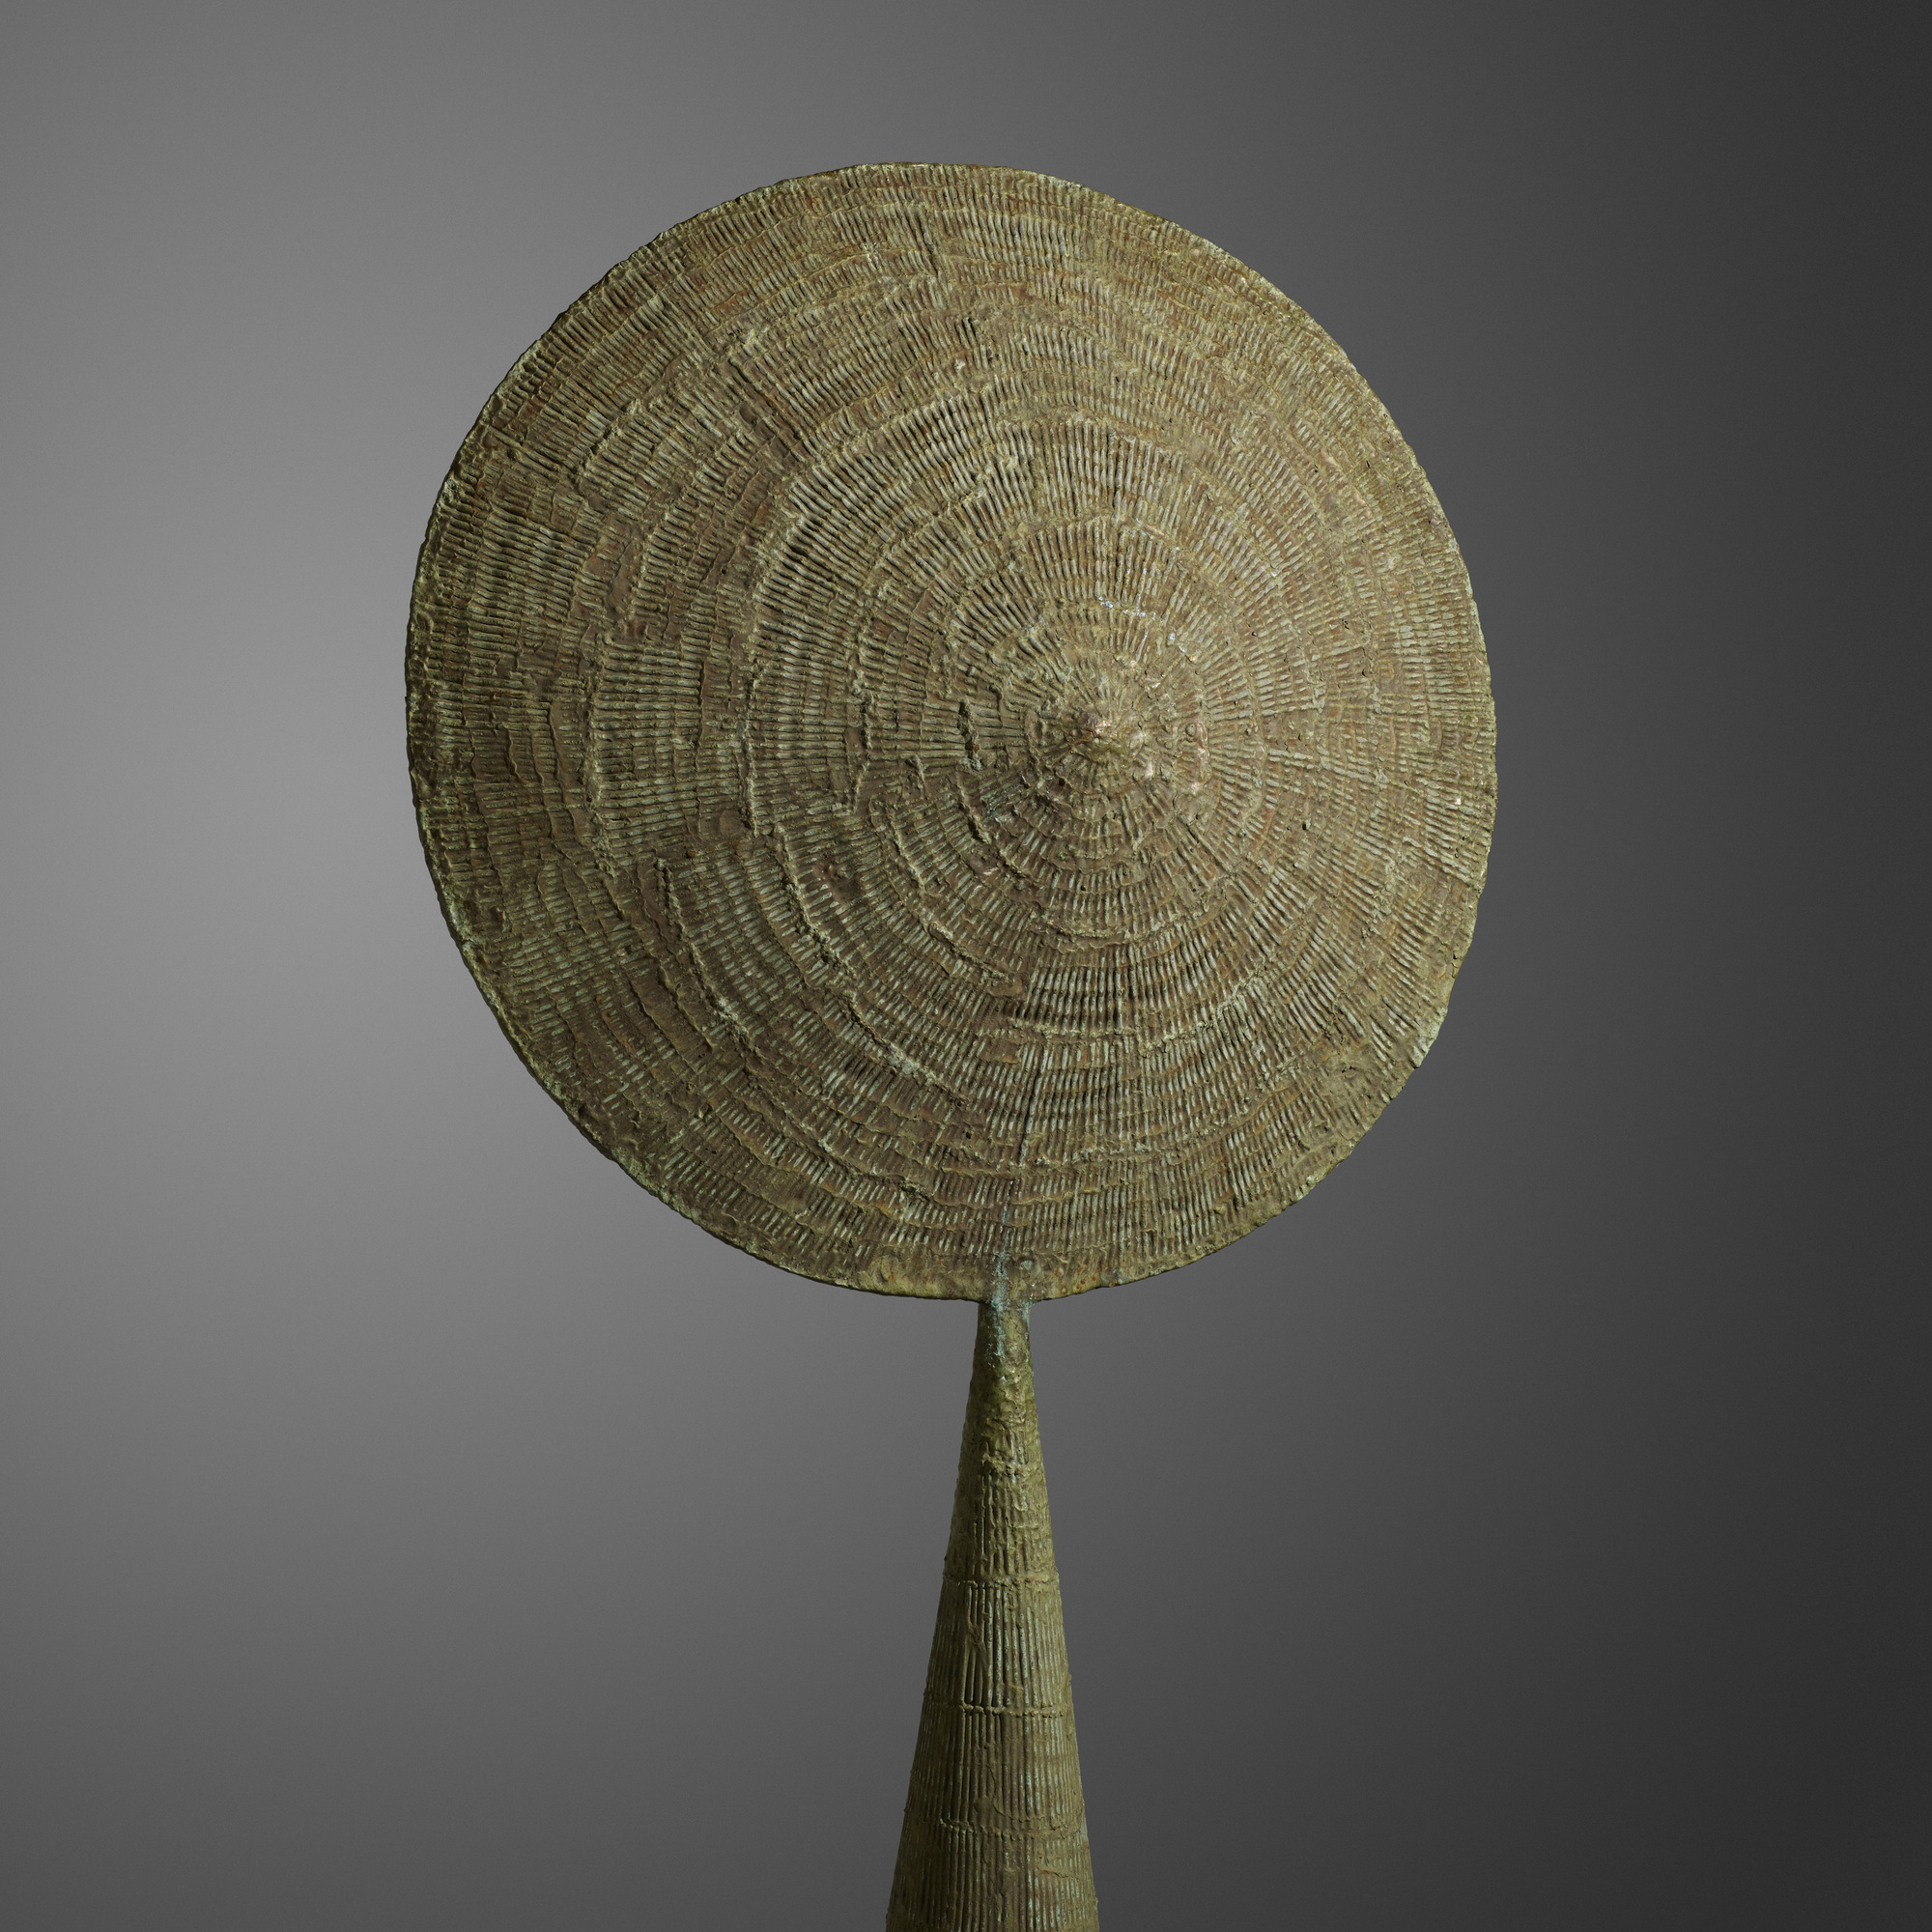 28: Harry Bertoia / Important and Monumental sculptures from Stemmons Towers, Dallas (3 of 3)